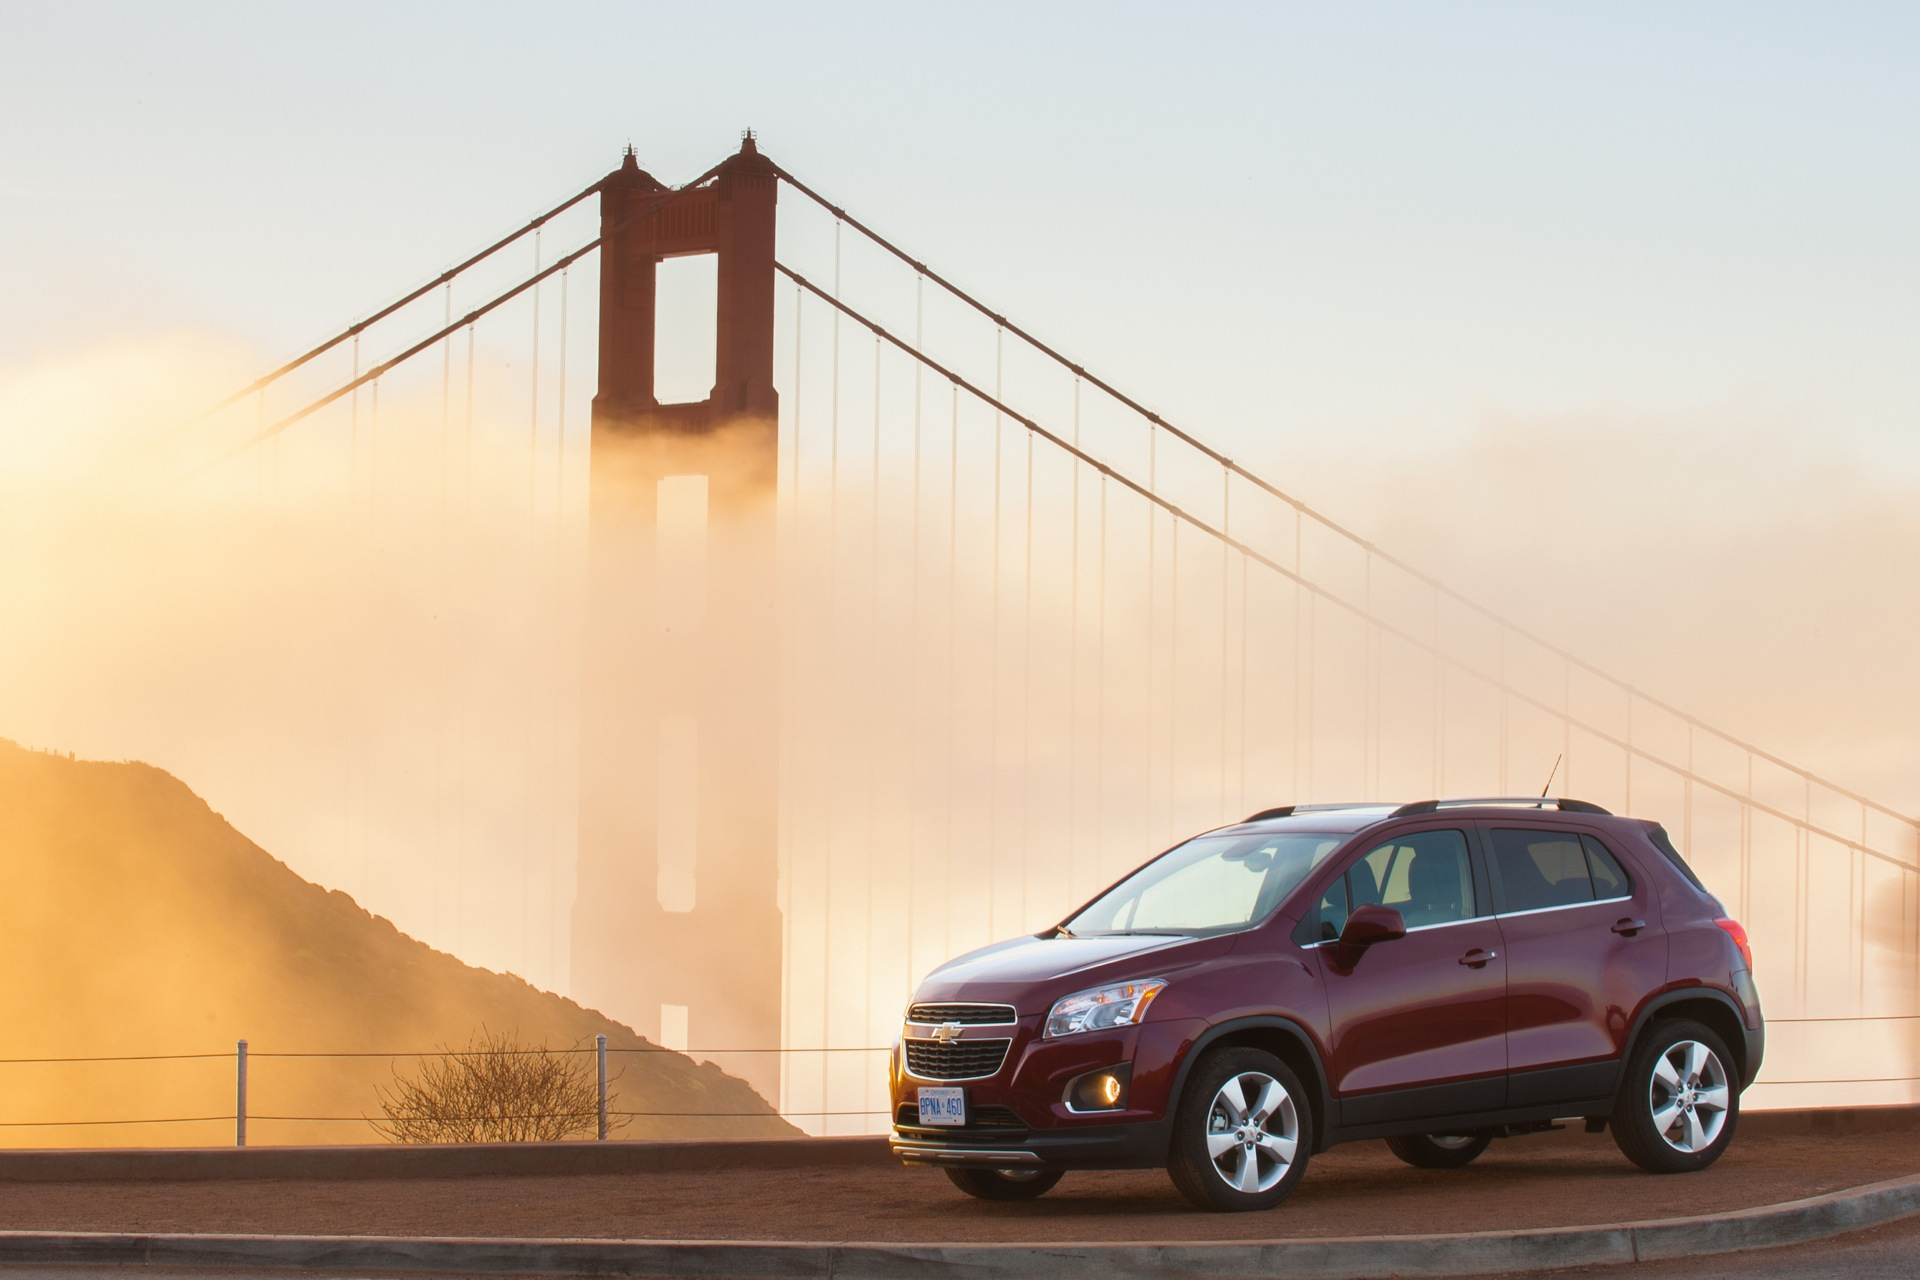 Chevrolet Trax @ drivelife.it magazine on line